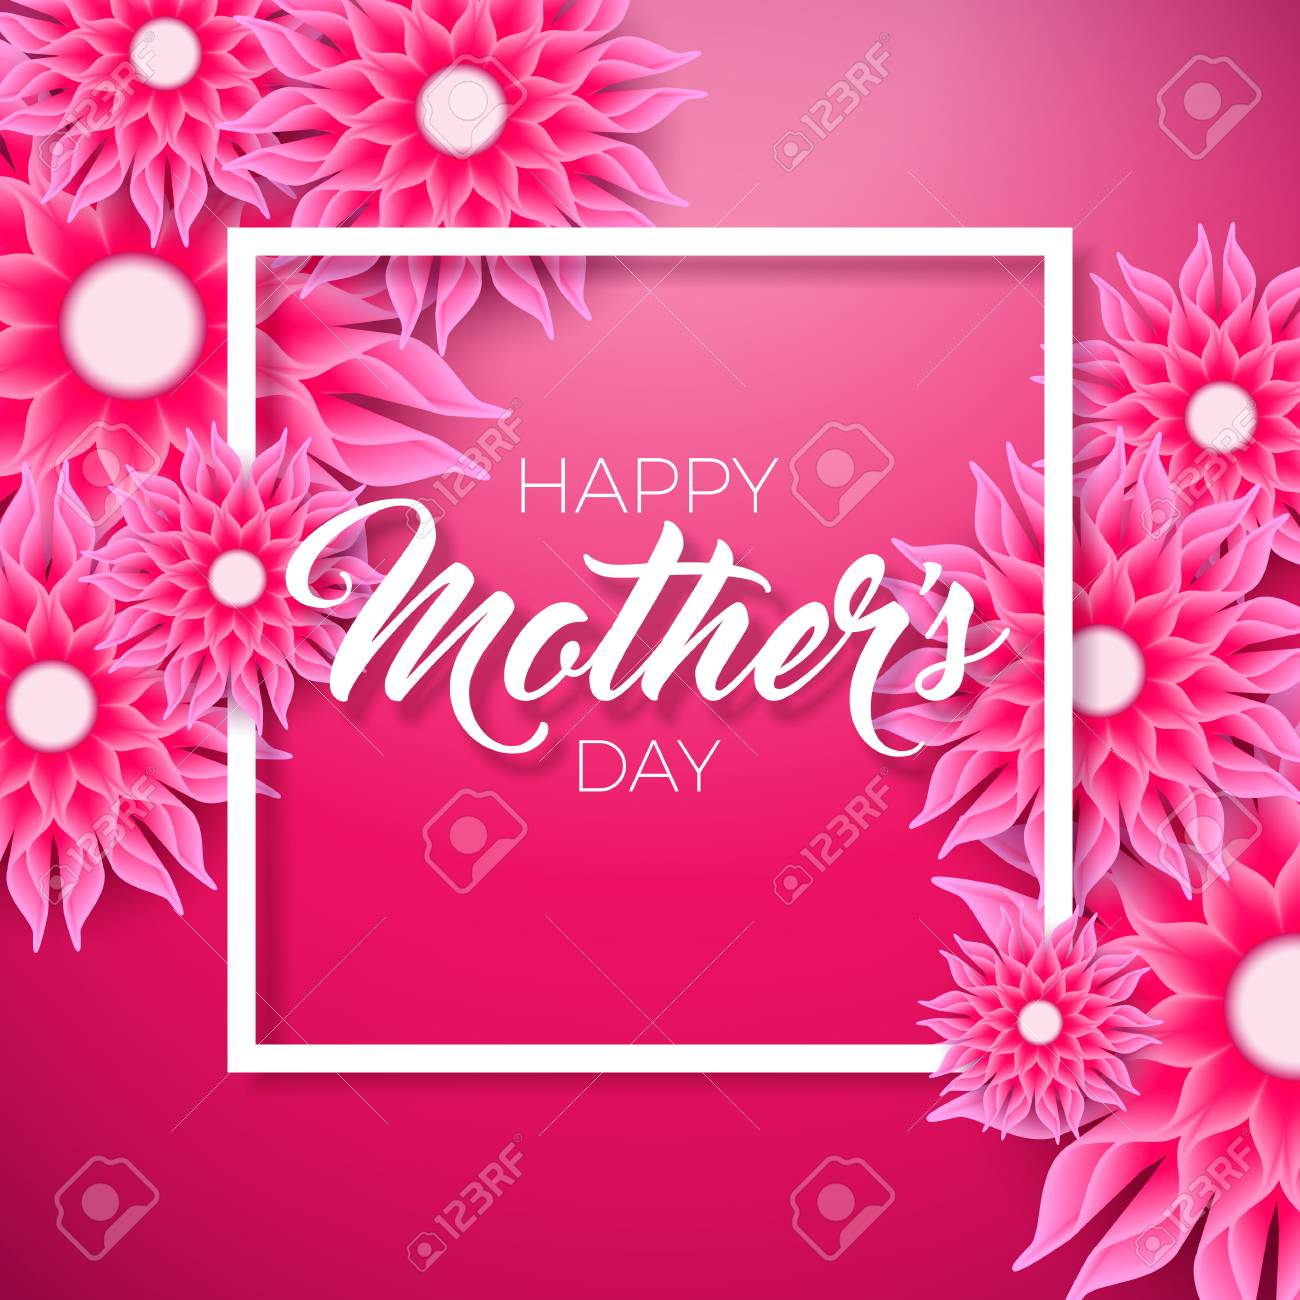 Happy mothers day greeting card with flower on pink background happy mothers day greeting card with flower on pink background vector celebration illustration template with m4hsunfo